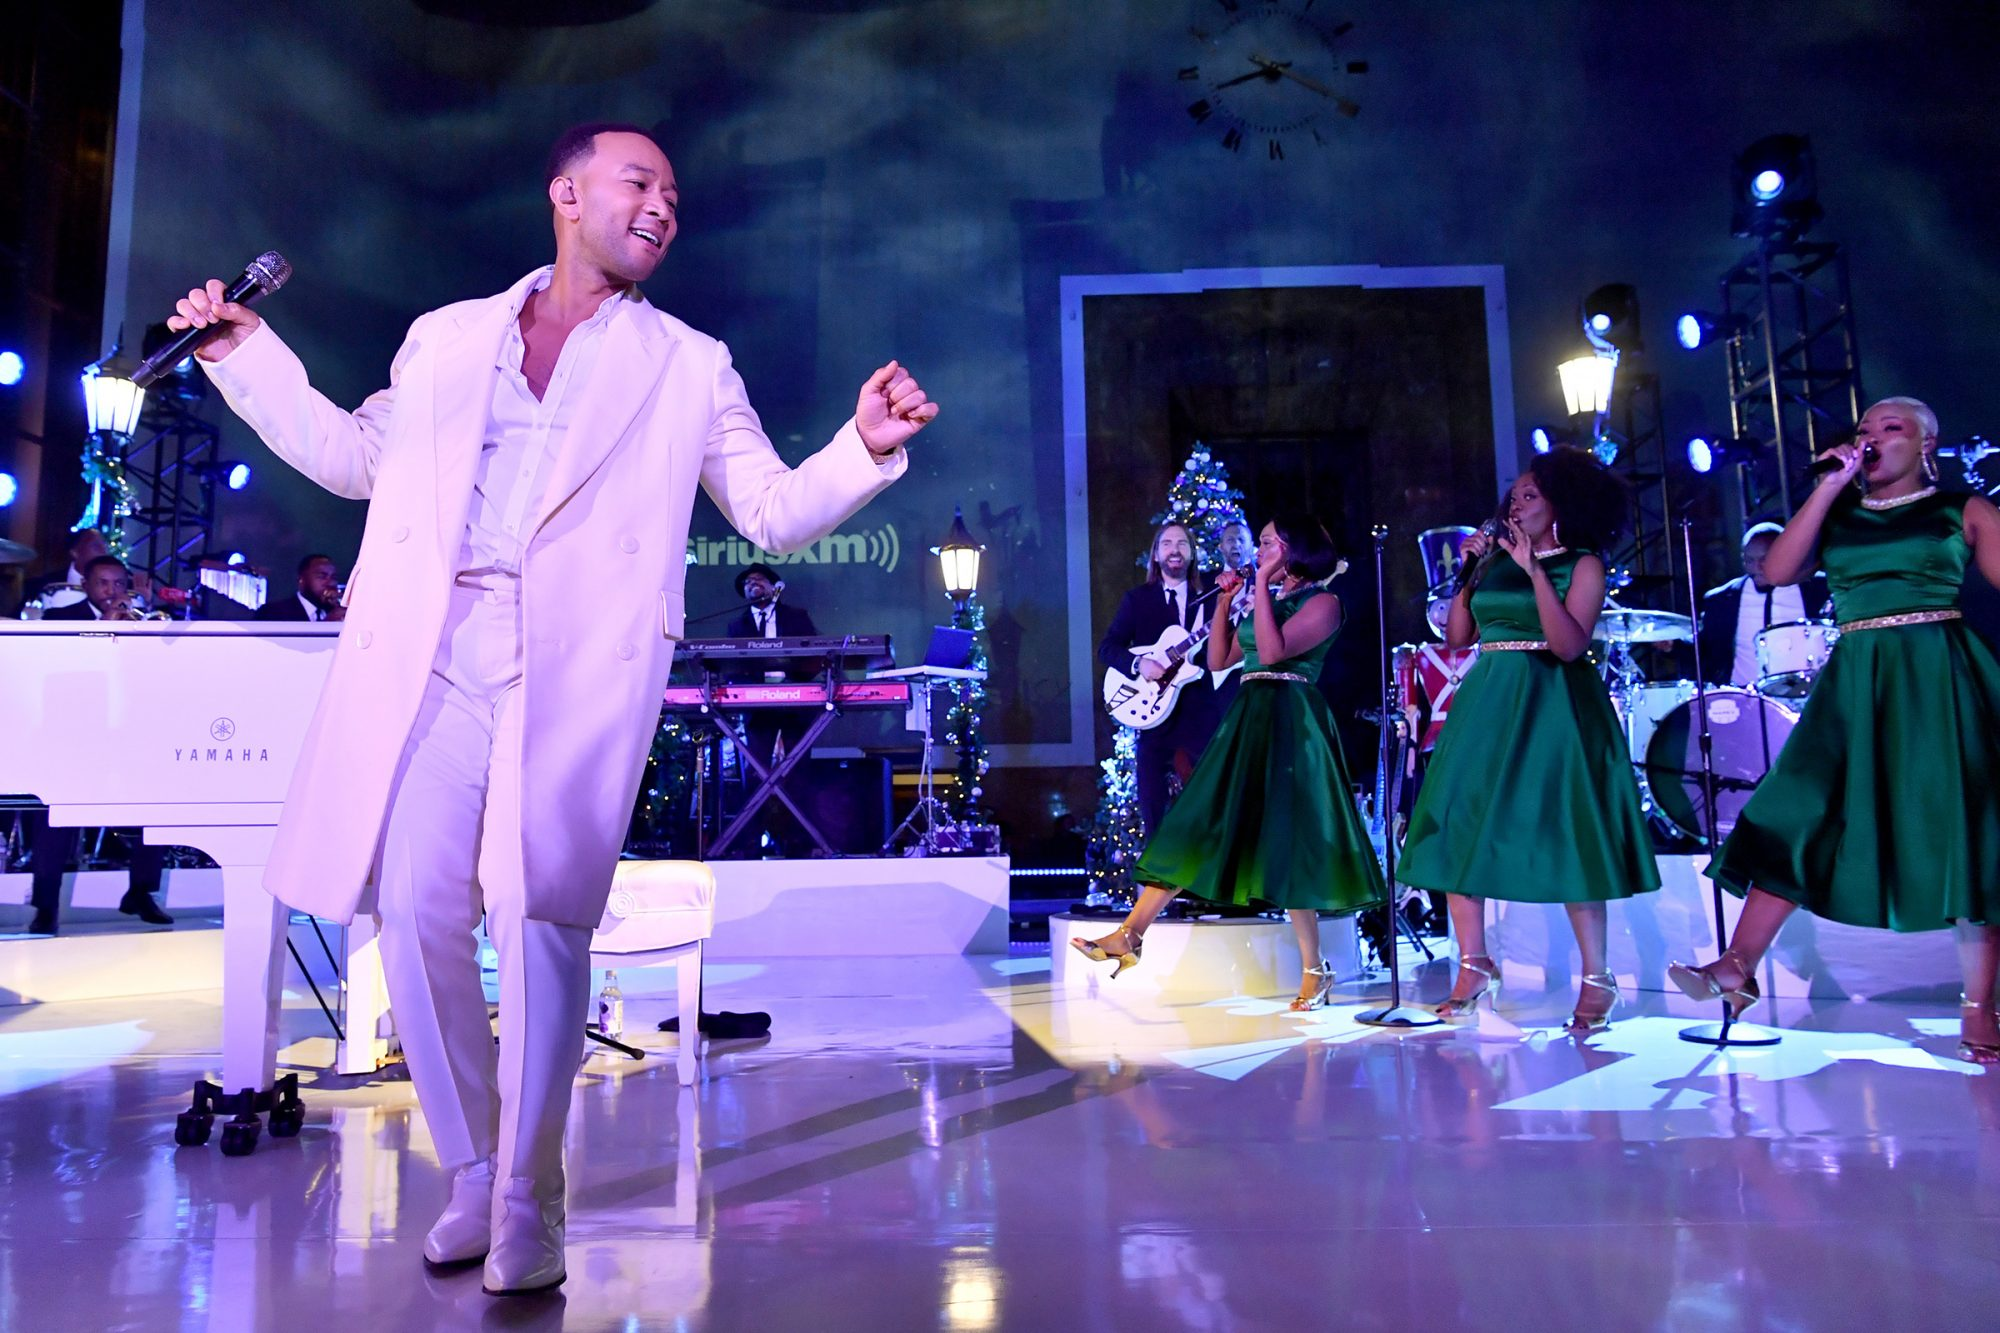 John Legend spreads holiday cheer at the historic Union Station on November 19, 2019 in Los Angeles, CA